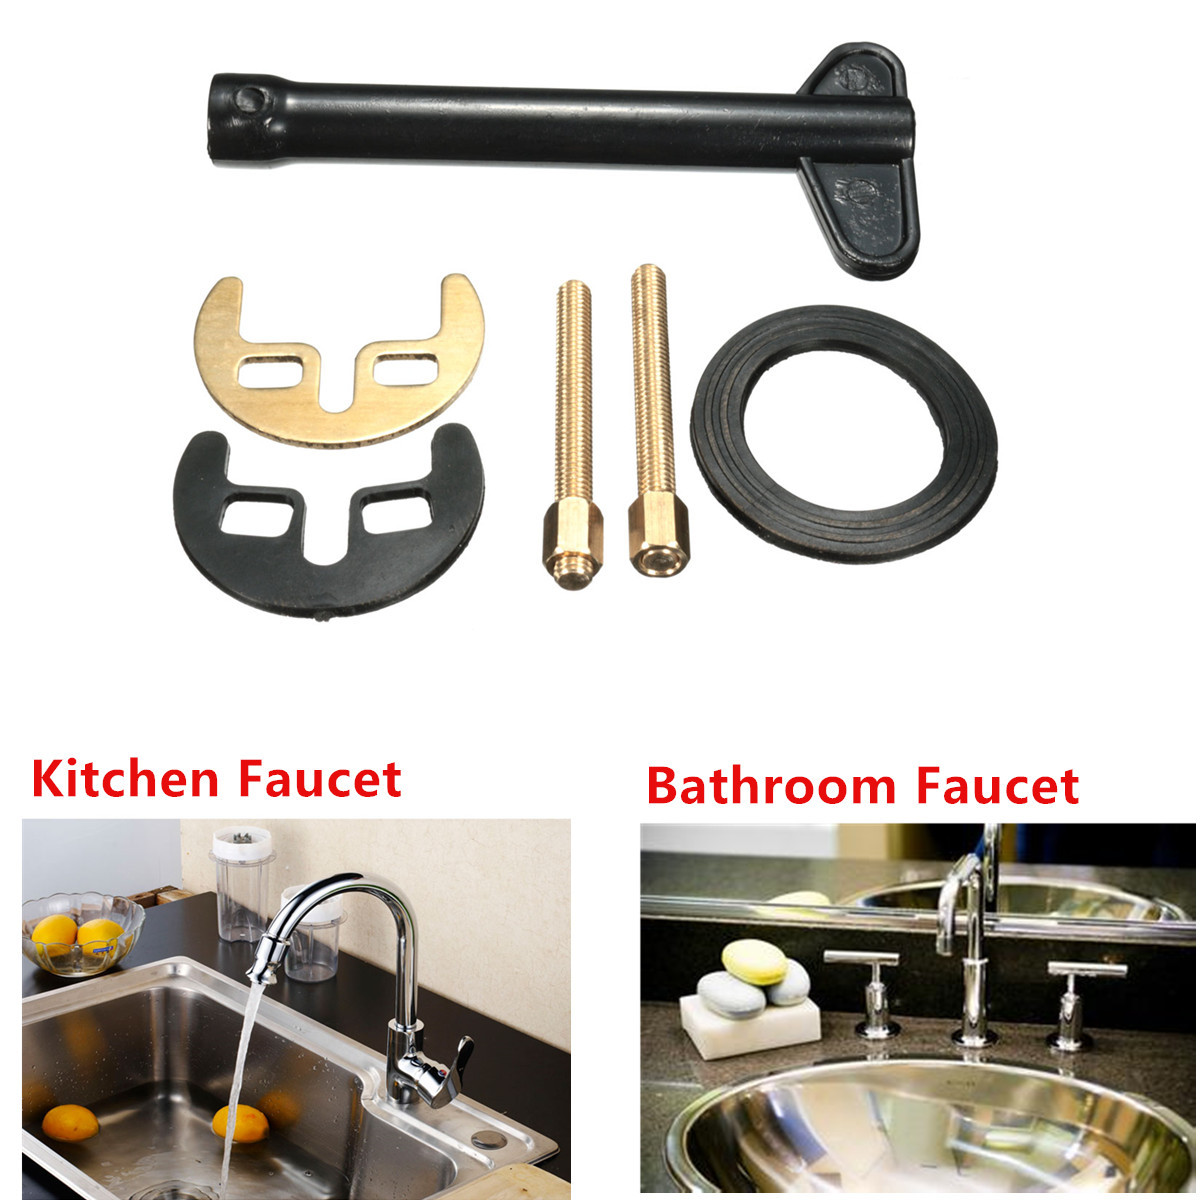 M6 Faucet Mounting Accessories Installation Tool Repair